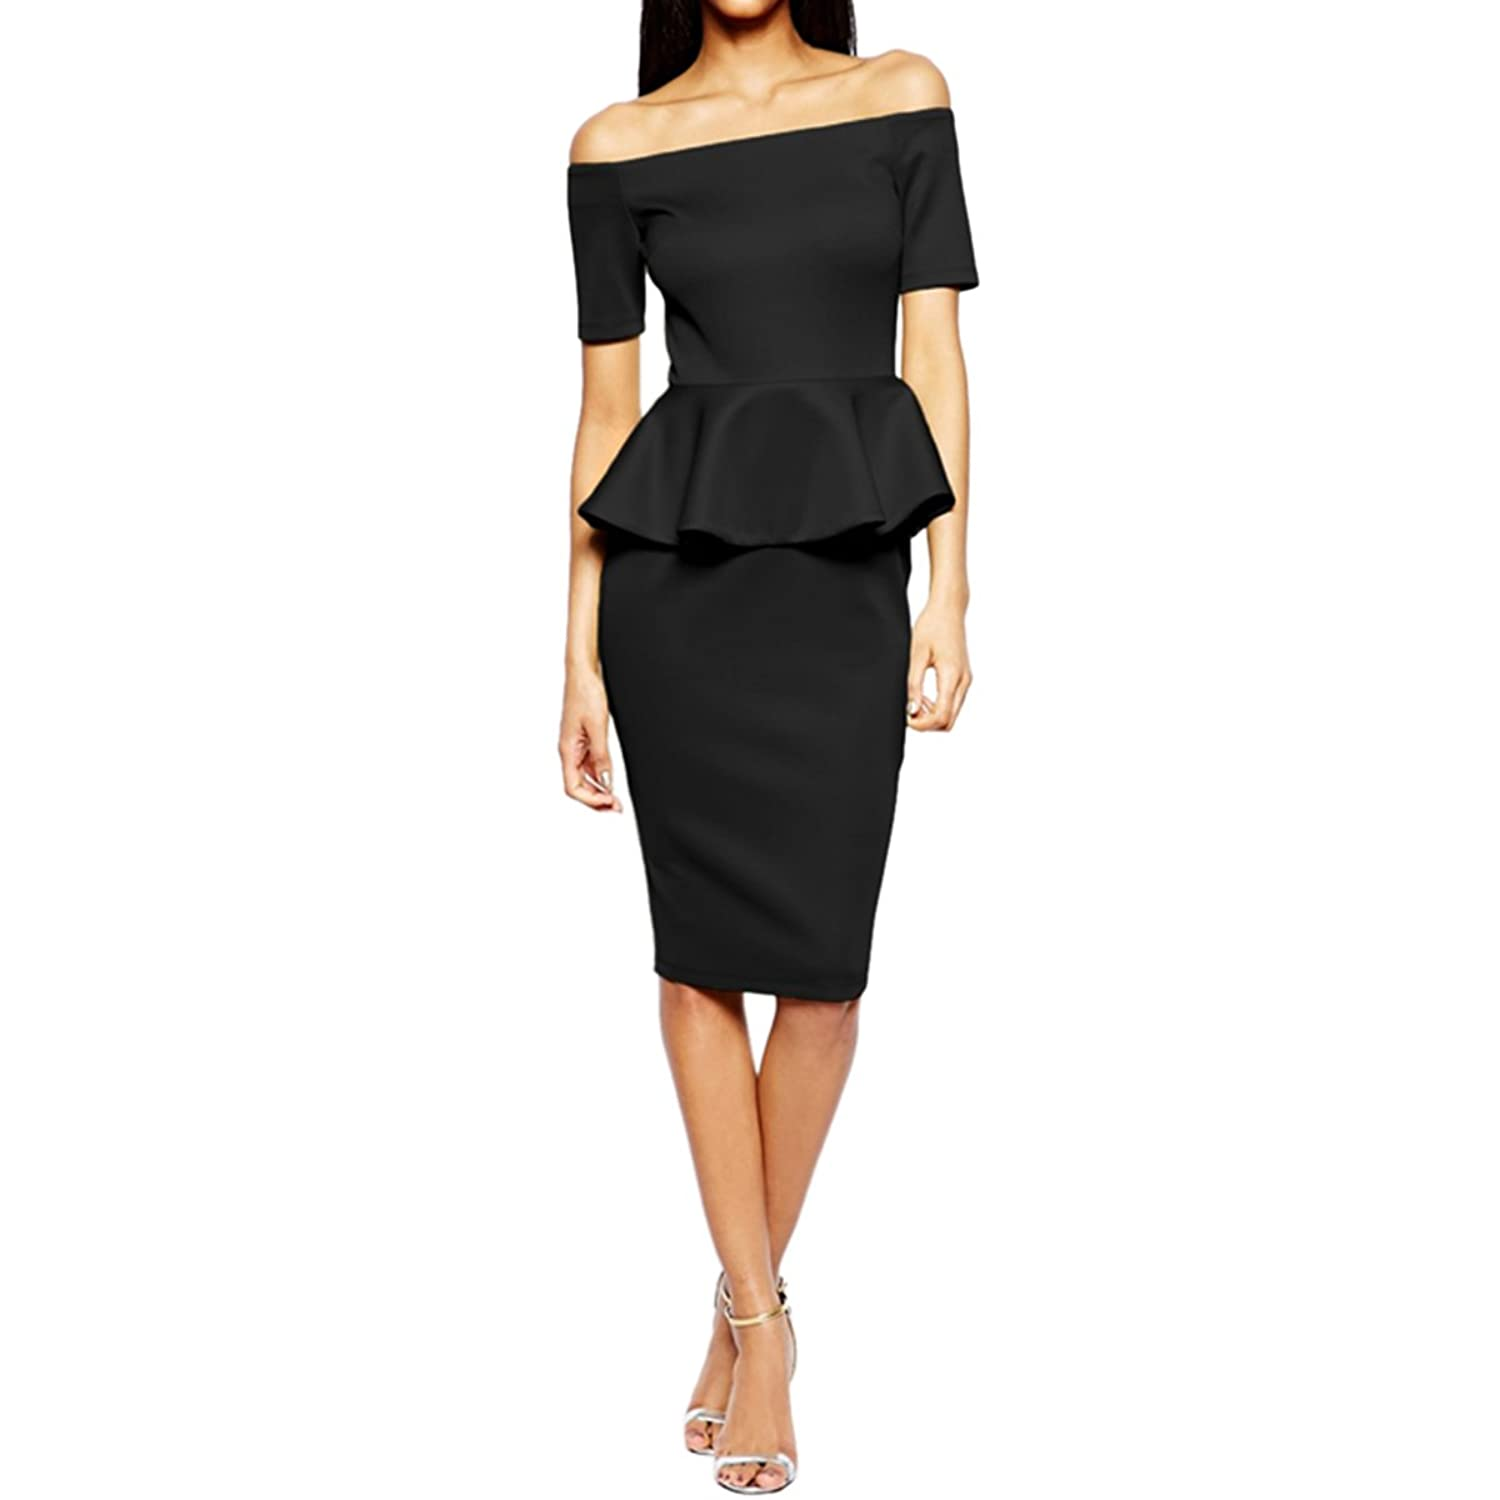 Sue&Joe Women's Off the Shoulder Dress Peplum Short Sleeve Midi Pencil Dresses